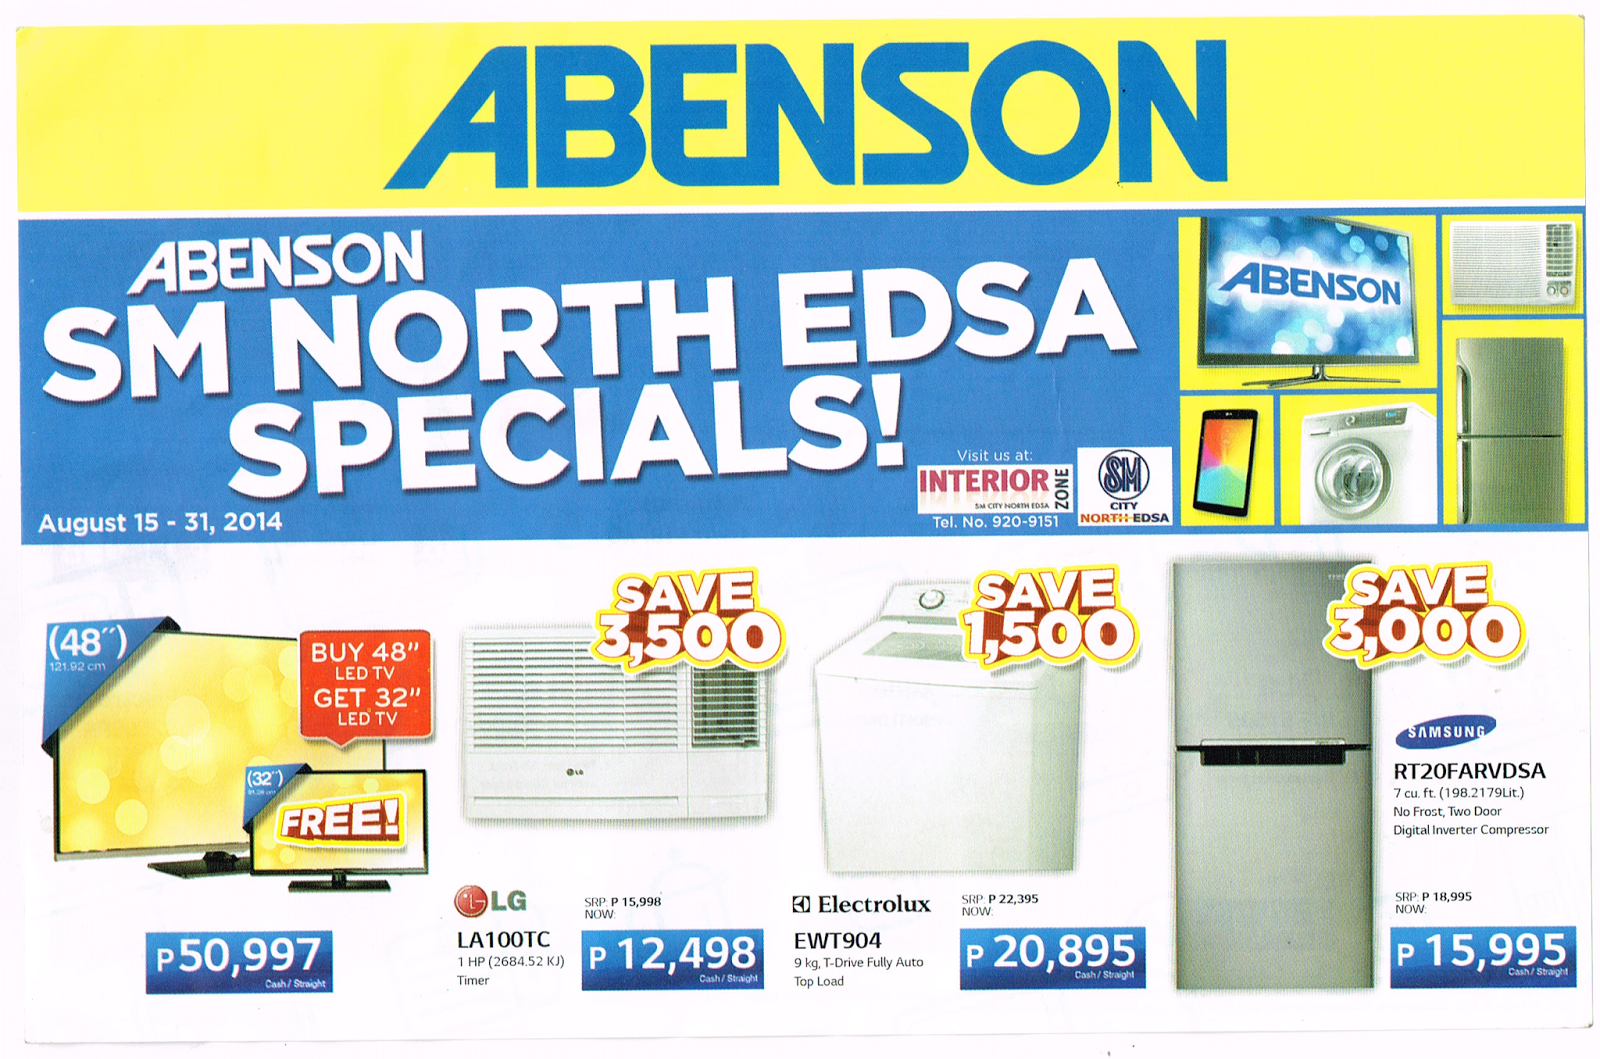 ABENSON: SM NORTH EDSA SPECIALS PROMO AUGUST 15-31,2014